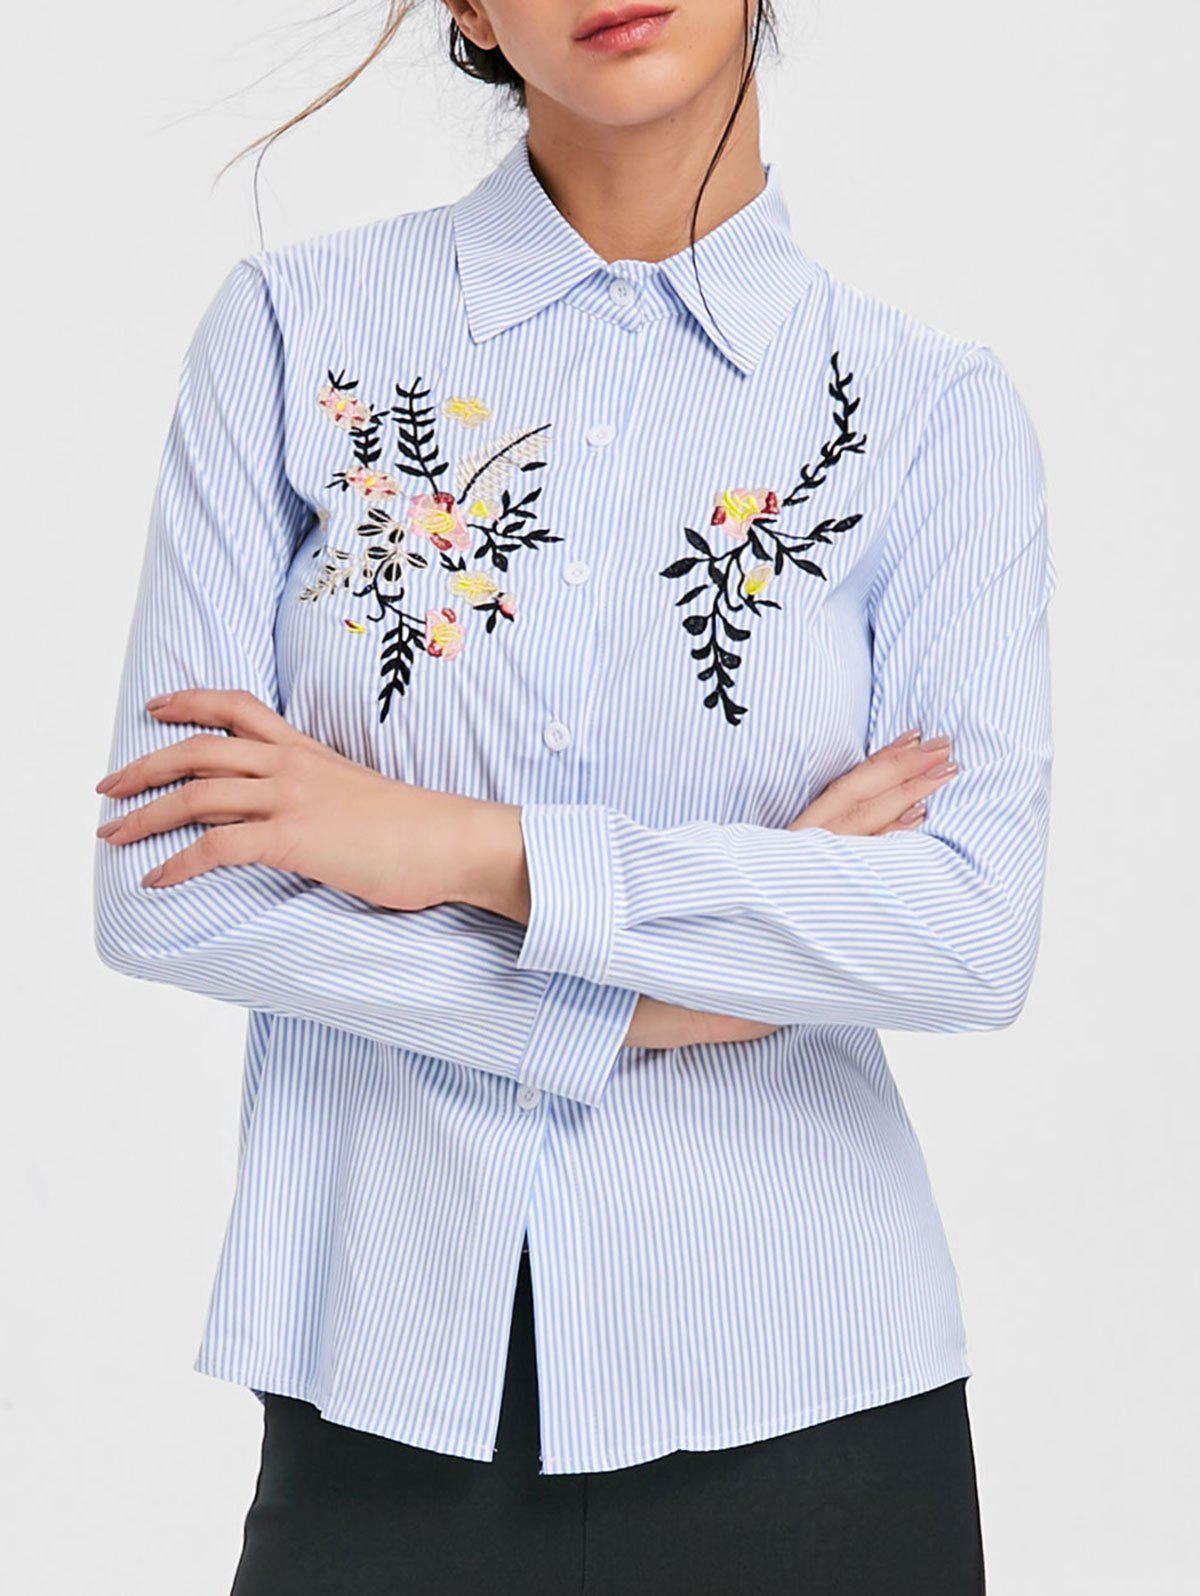 Shop Long Sleeve Embroidered Shirt